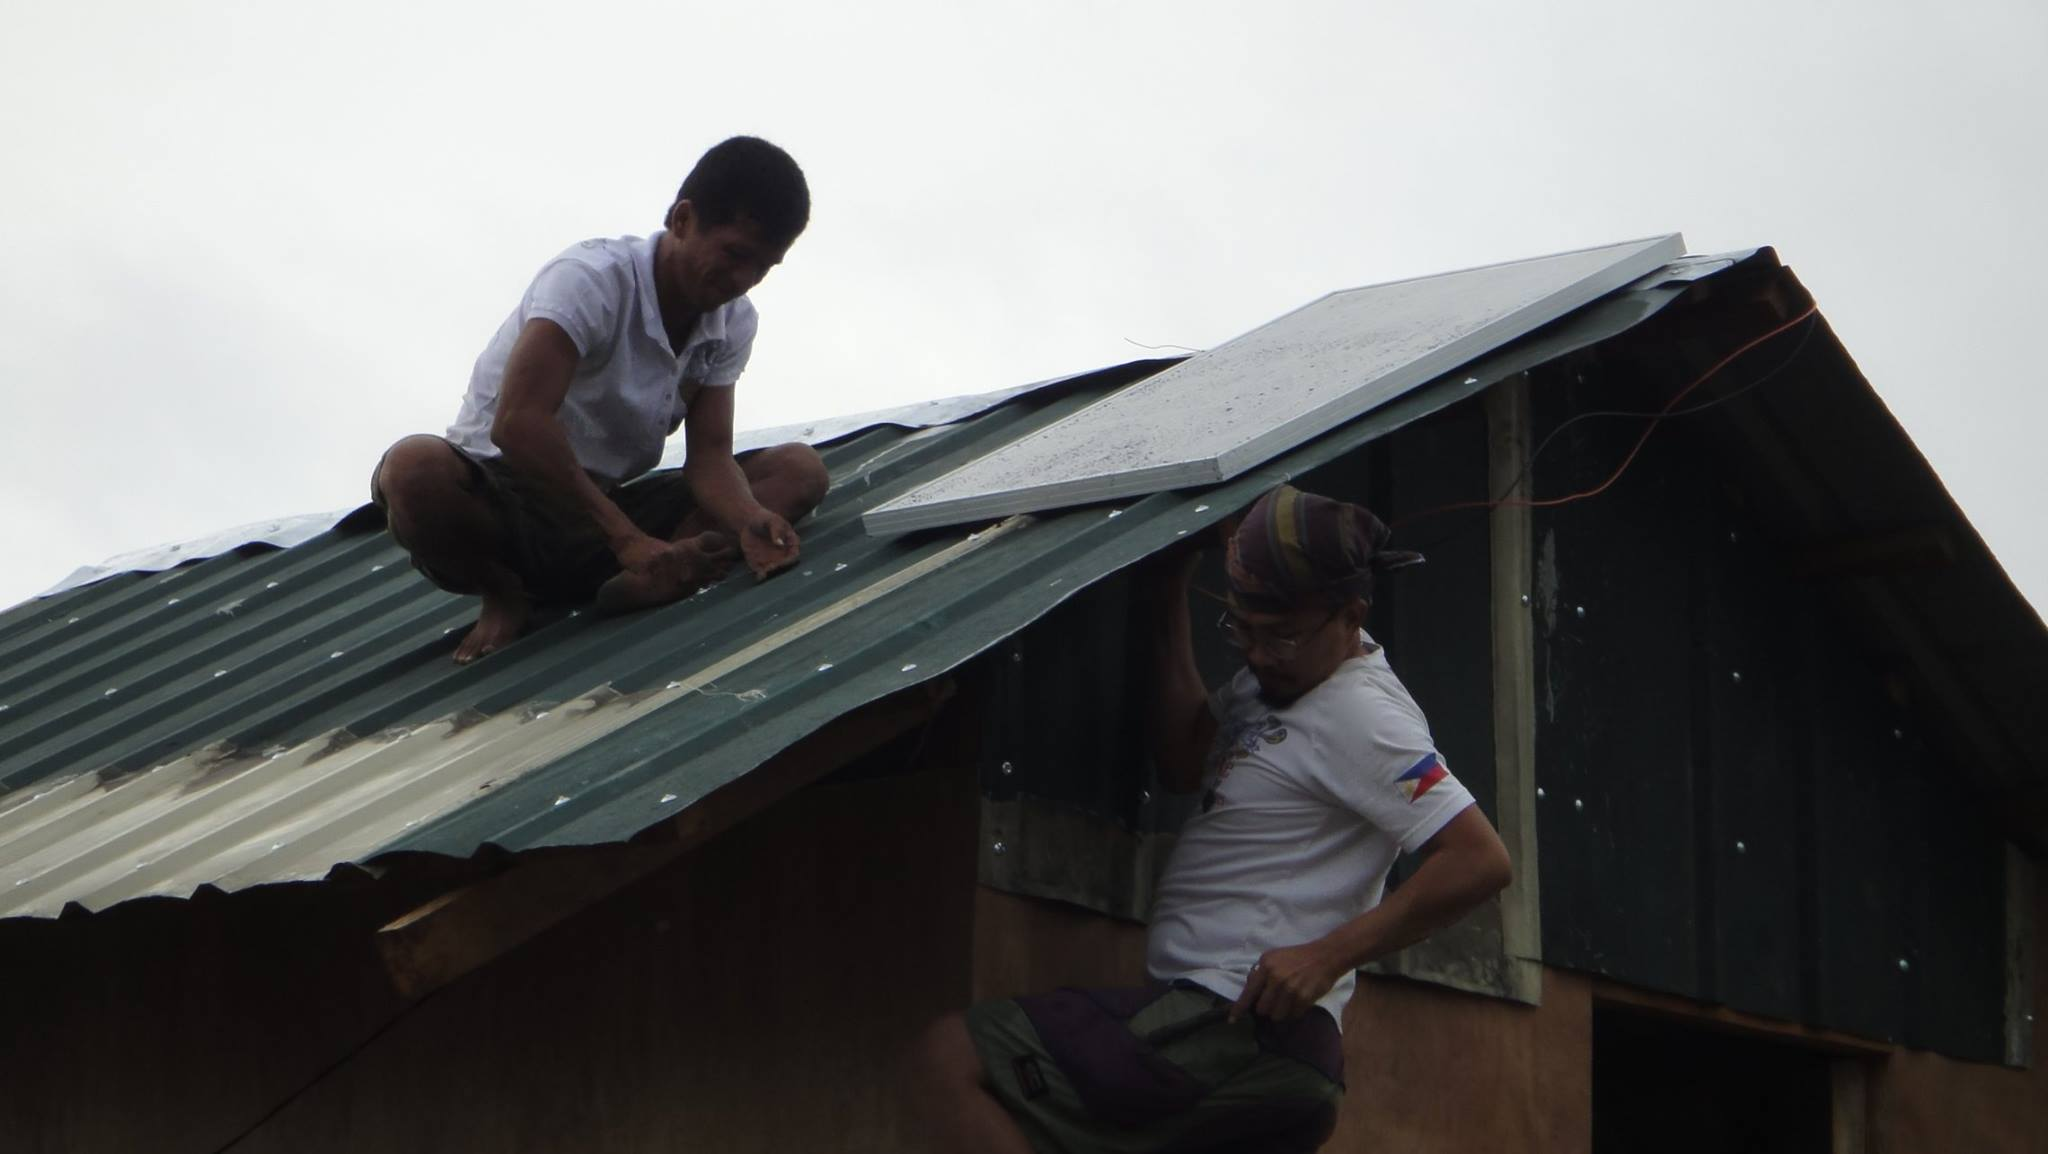 IN CASE OF EMERGENCY. SolarSolutions provides alternative energy solutions during disaster response